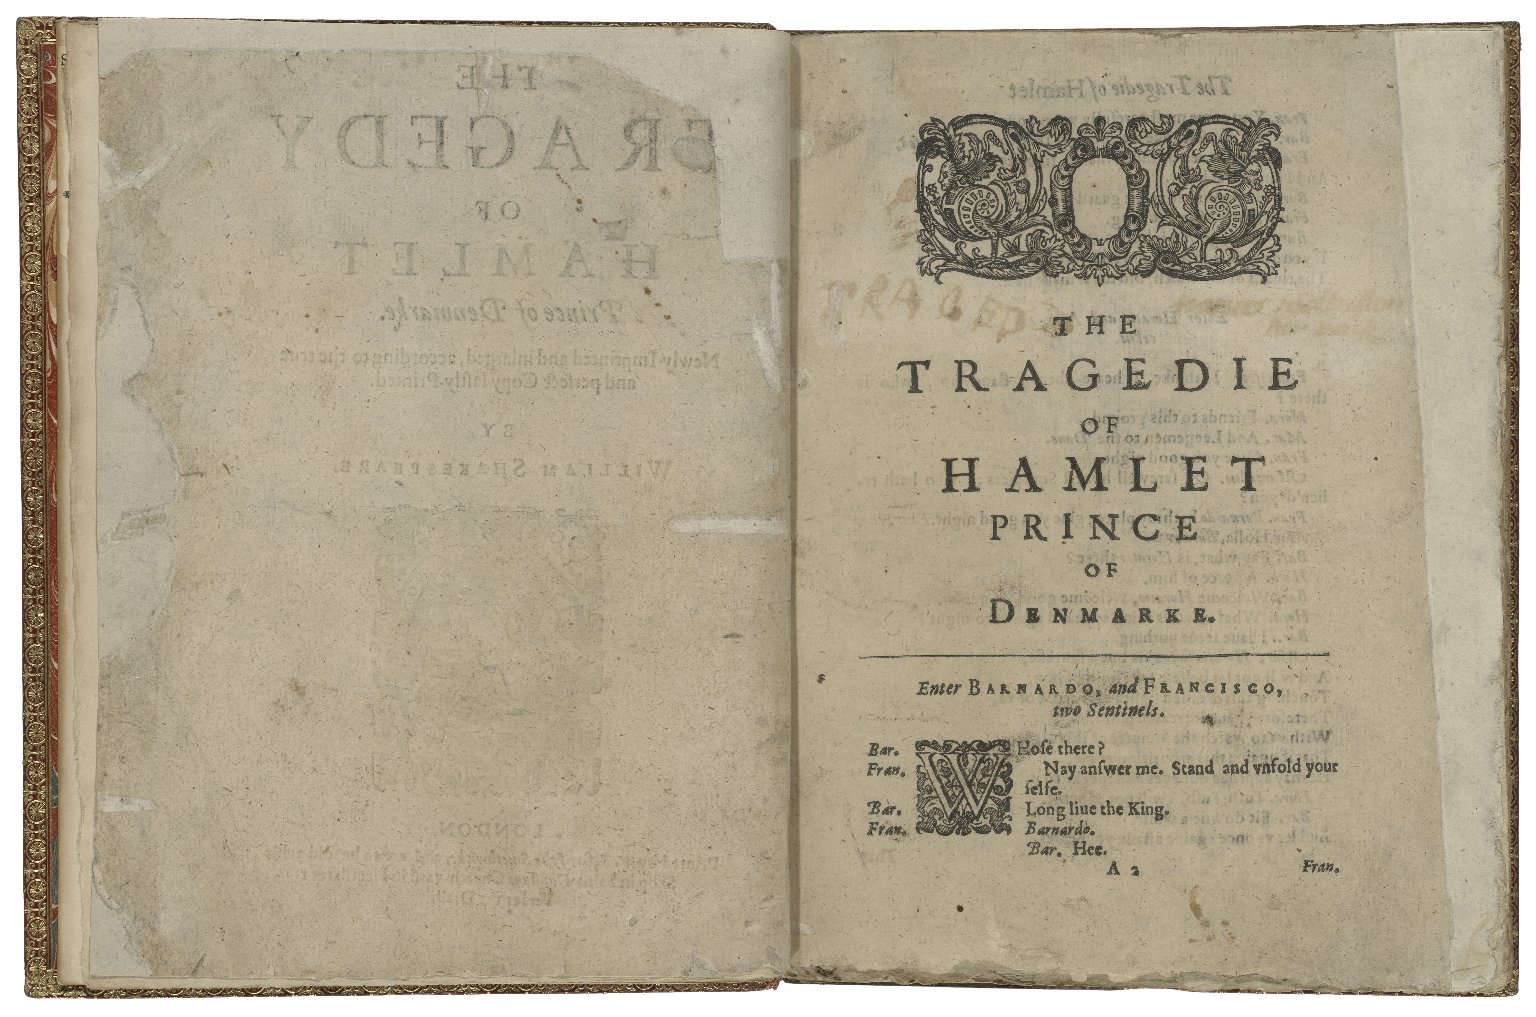 The tragedy of Hamlet Prince of Denmarke